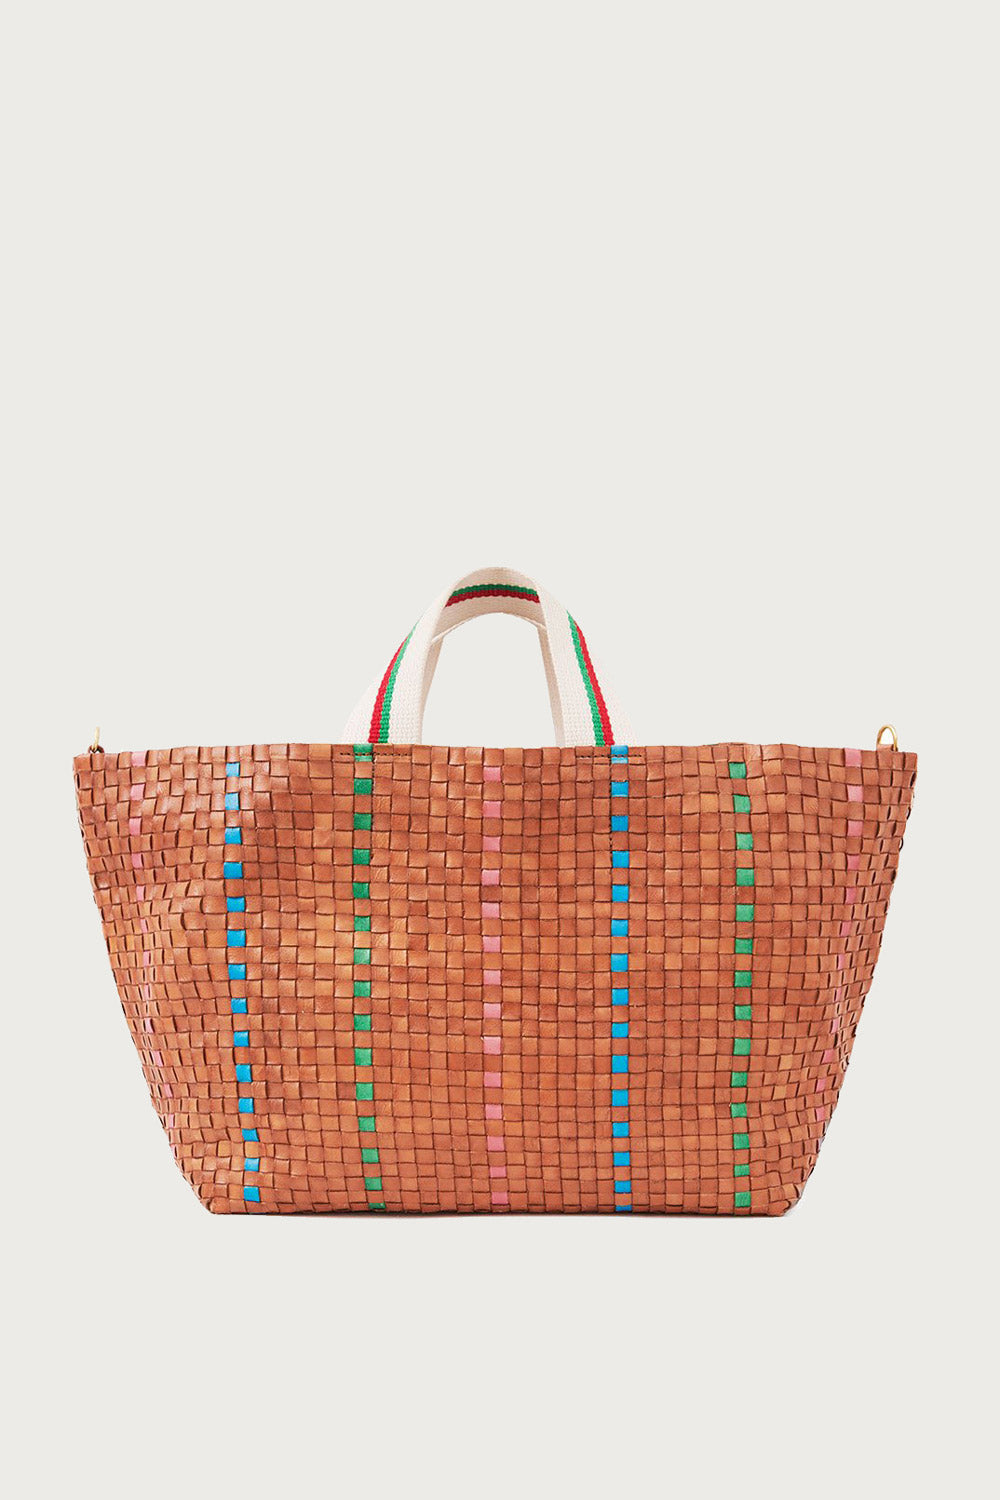 Bateau Tote in Natural